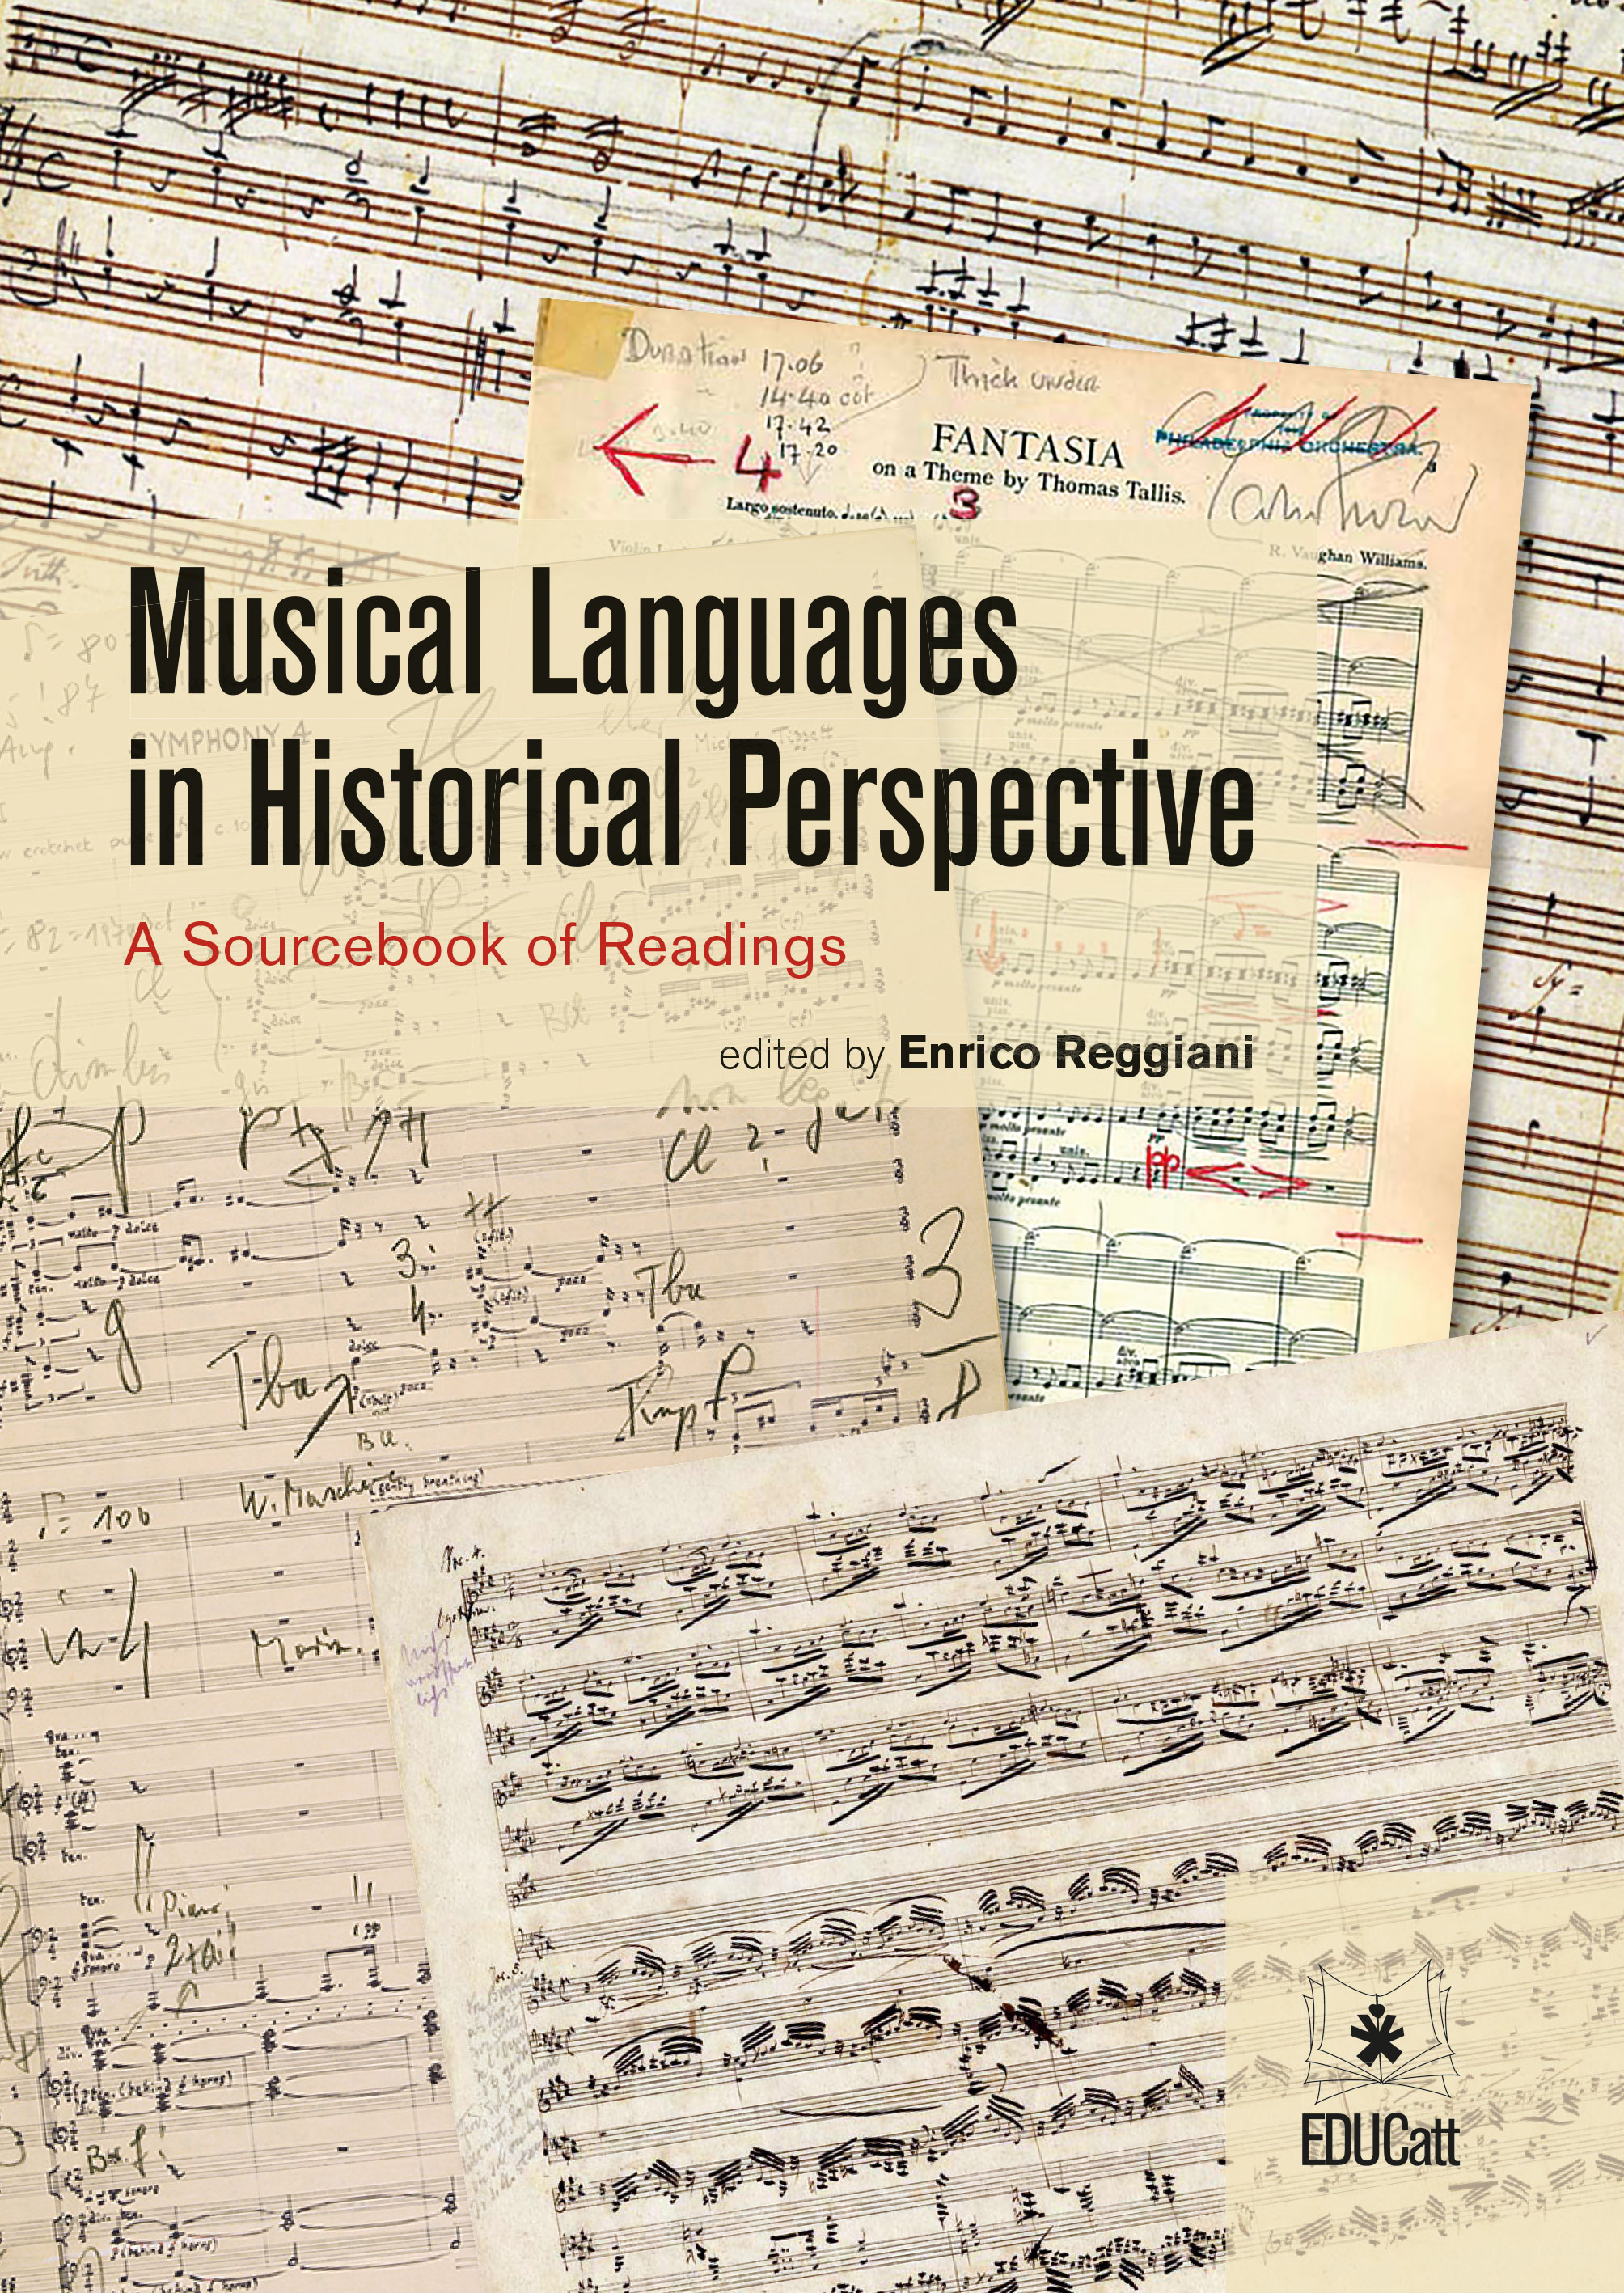 MUSICAL LANGUAGES IN HISTORICAL PERSPECTIVE